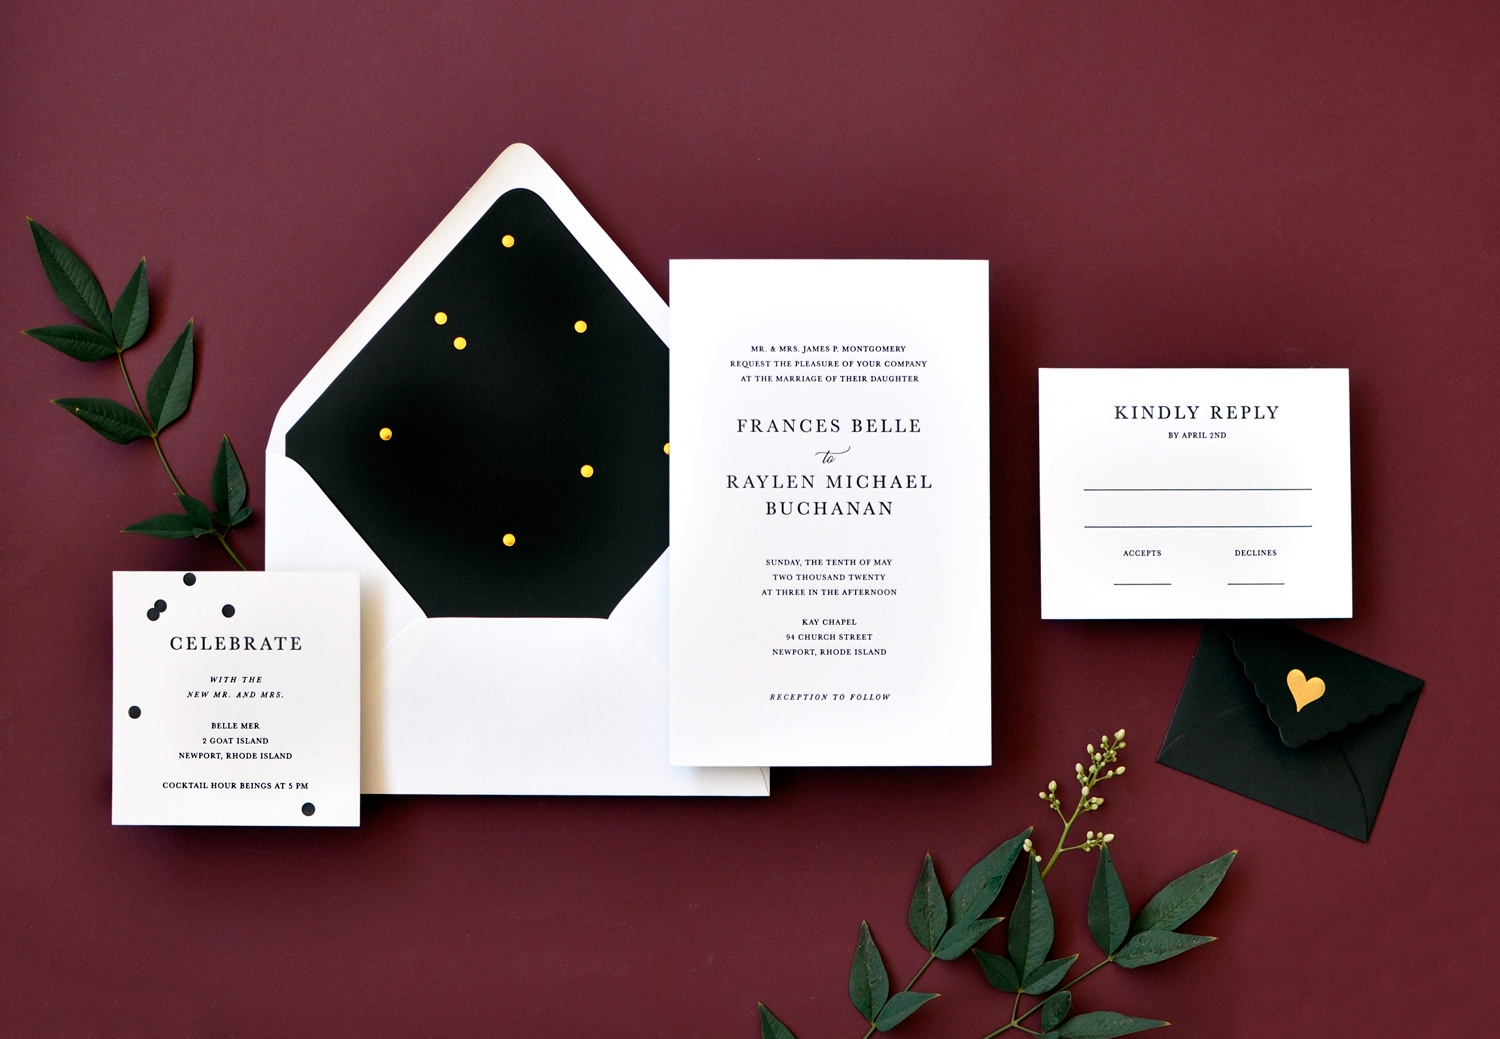 Frances luxury wedding invitation is bold in it's simplicity.  beautiful text setting!  A pop of drama comes from a delicate sprinkle of gold foil dots on a black envelope liner.